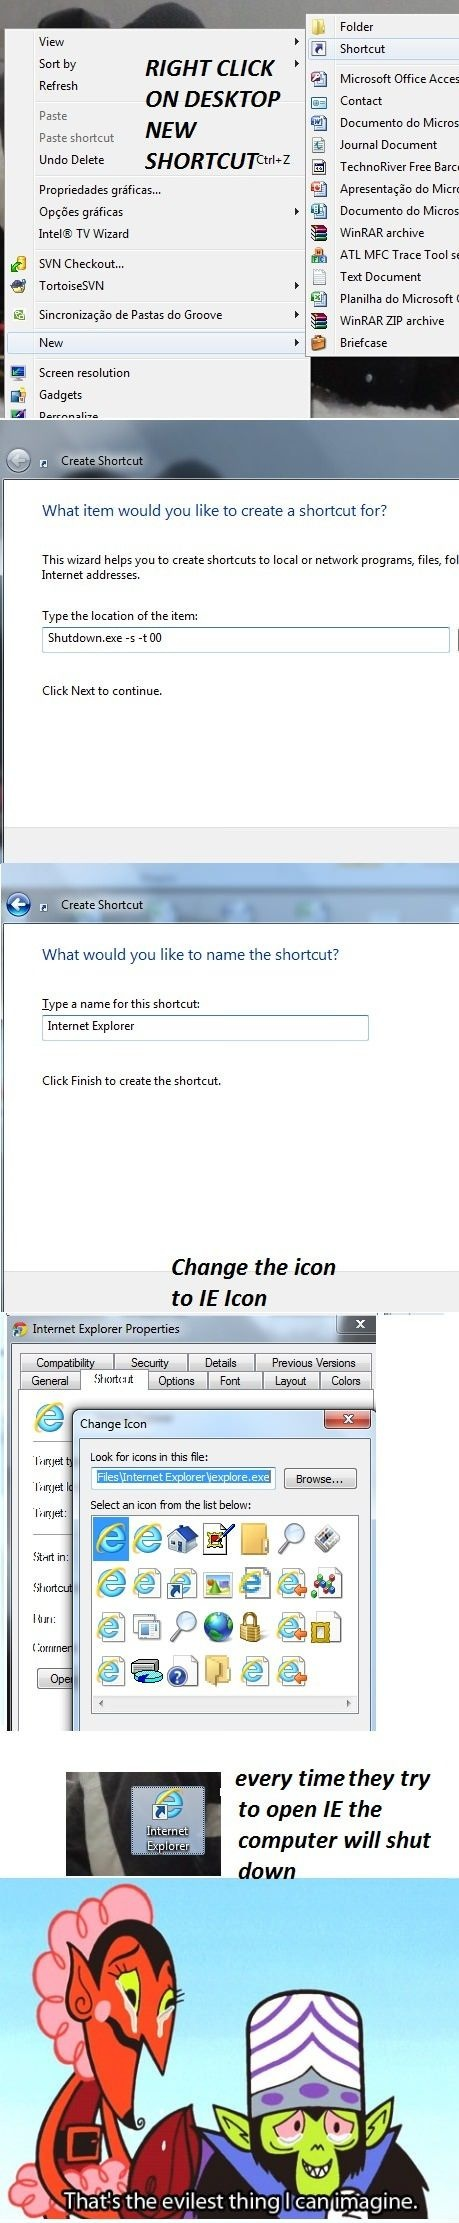 How To Deal With People That Use Internet Explorer (Picture)